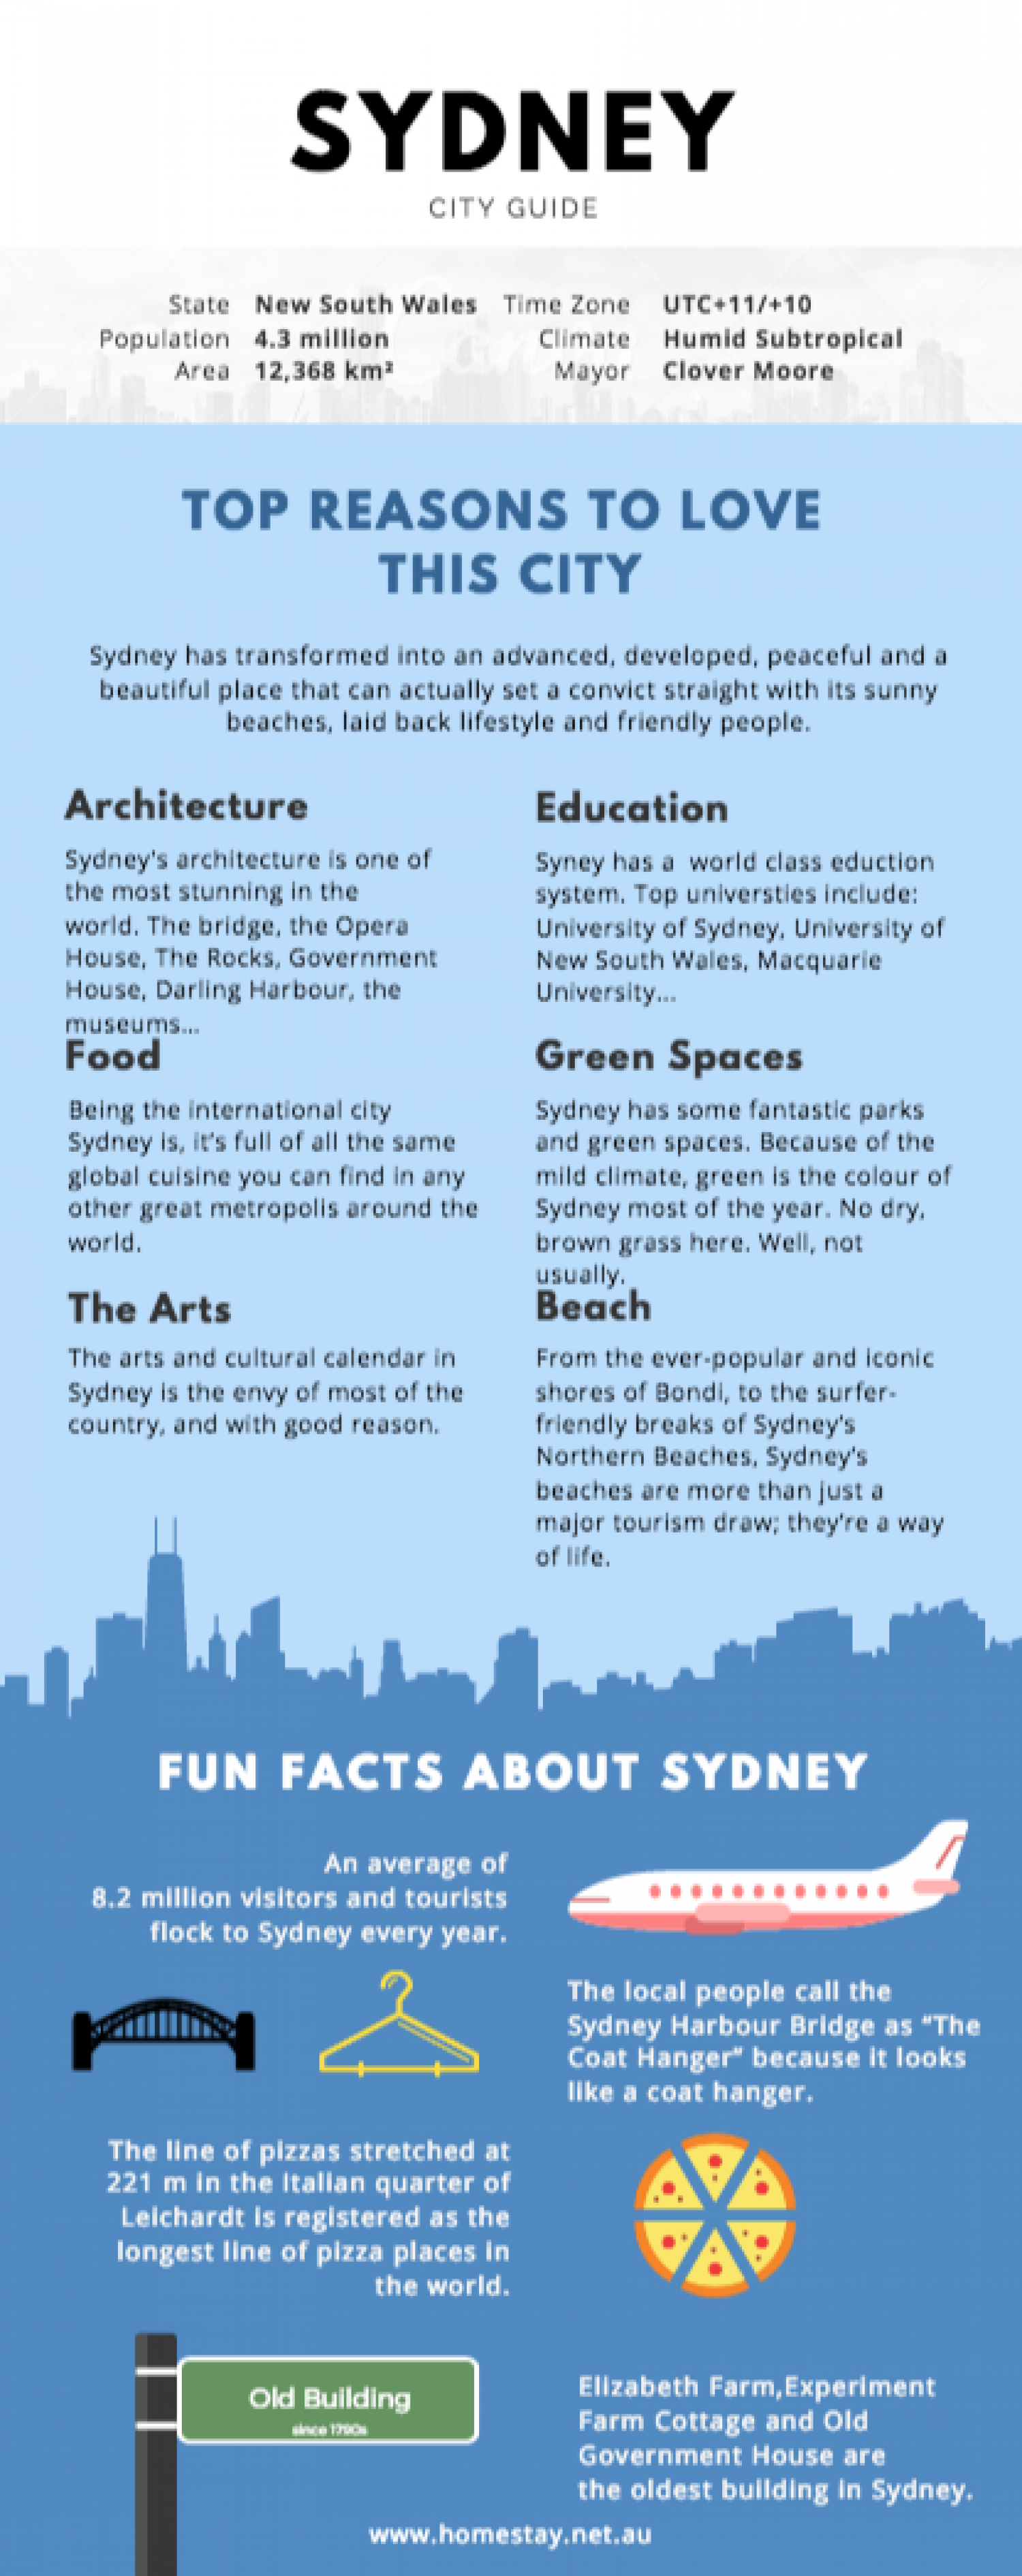 Sydney City Guide 2017 Infographic